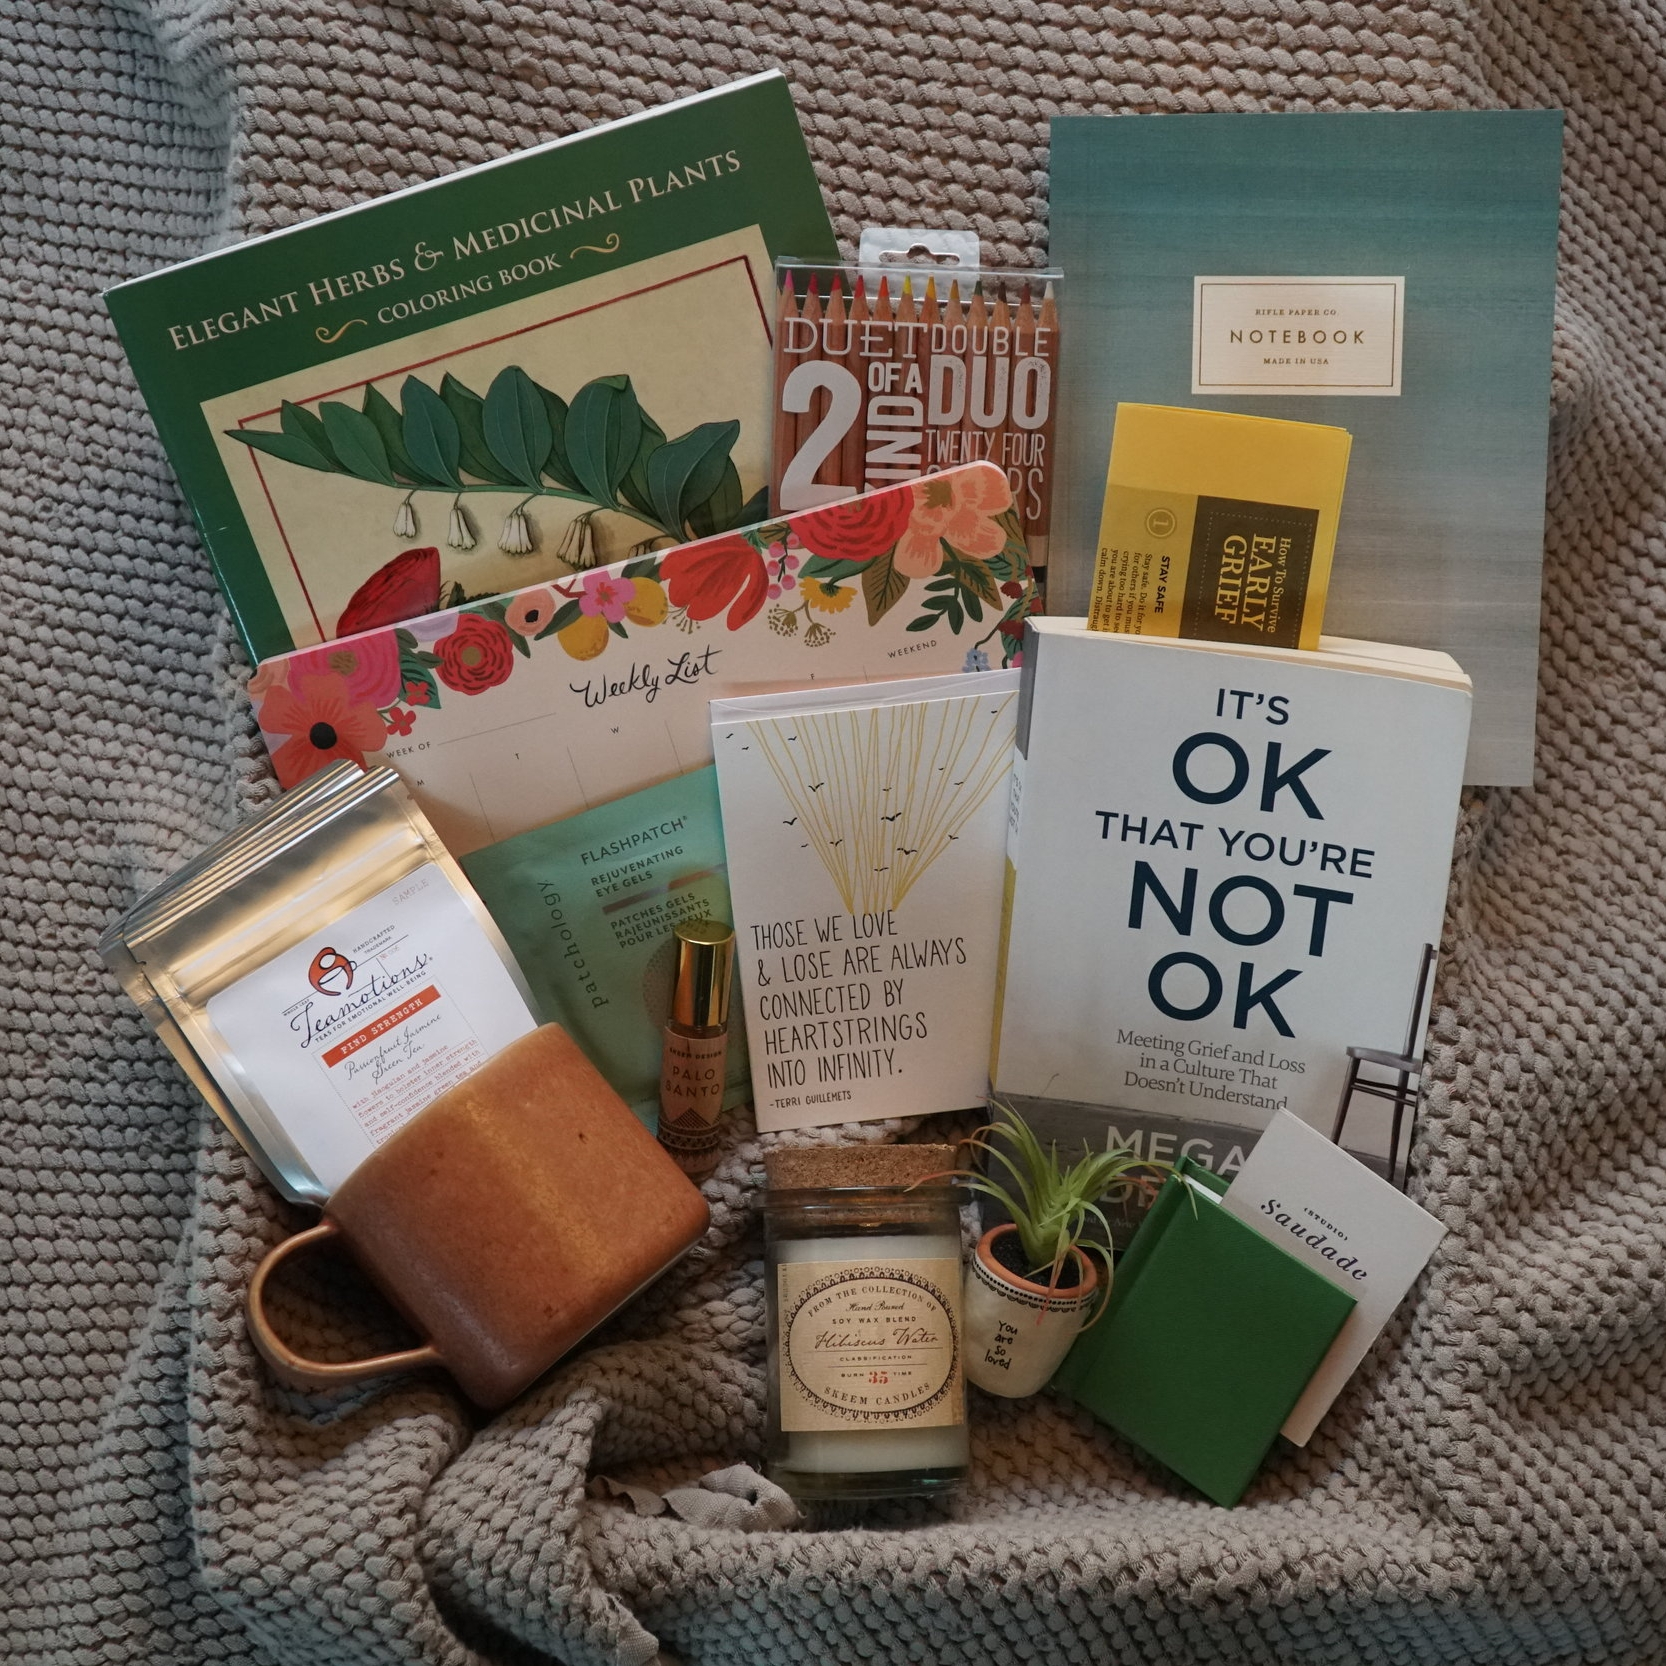 Our grief kits offer tangible, ongoing support to someone who has lost a loved one - Losing a loved one is one of the most difficult transitions we can go through in life. As a friend or family member of someone going through such a loss, it's not always easy to know how best to offer our support.Our curated Grief Kits offer a meaningful and helpful pathway to offer much-needed support over an extended period of time.